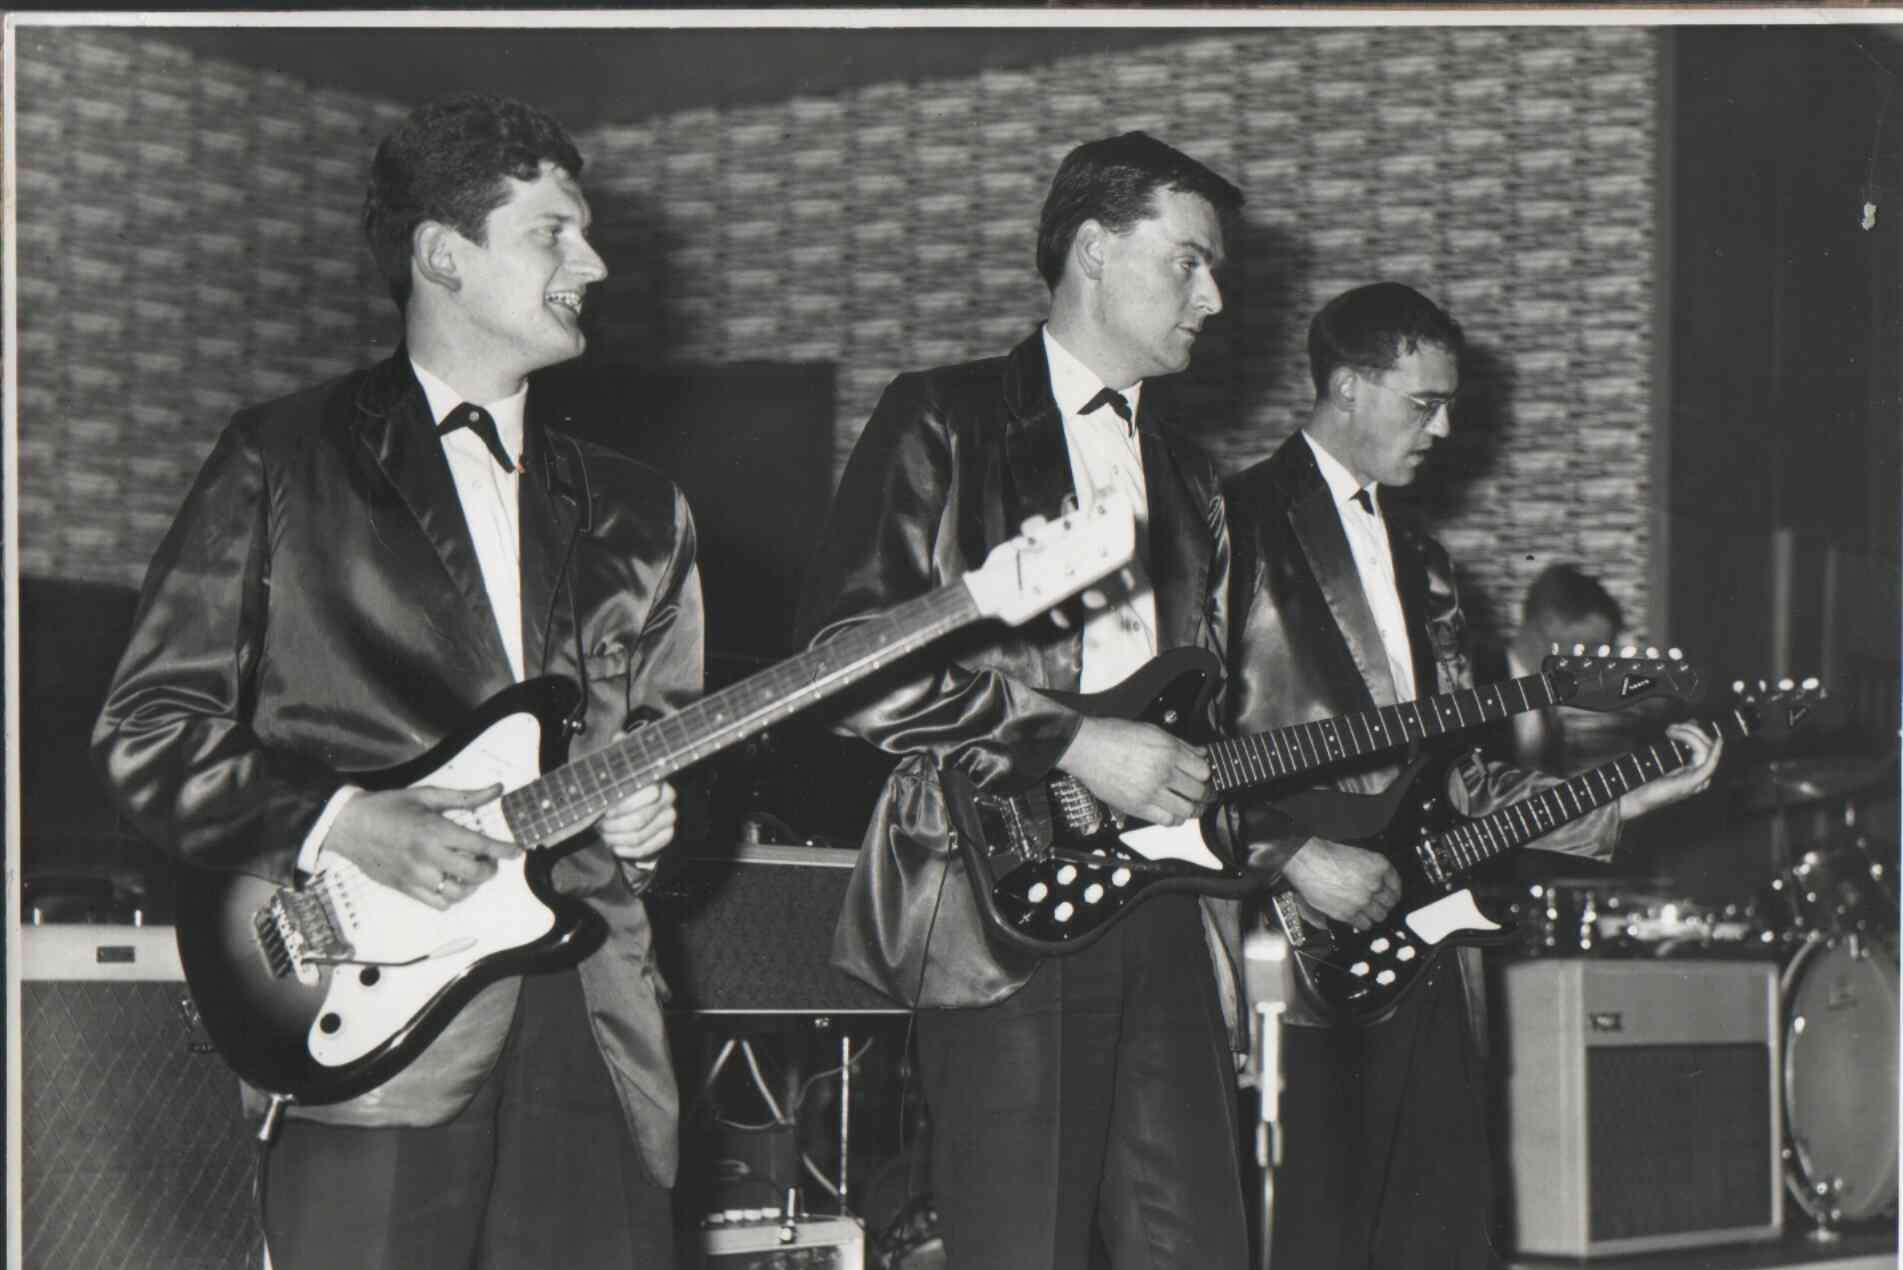 The Zephyrs playing at the Kent Candy Ball at the Royal Star Hotel in Maidstone in the 1960s.